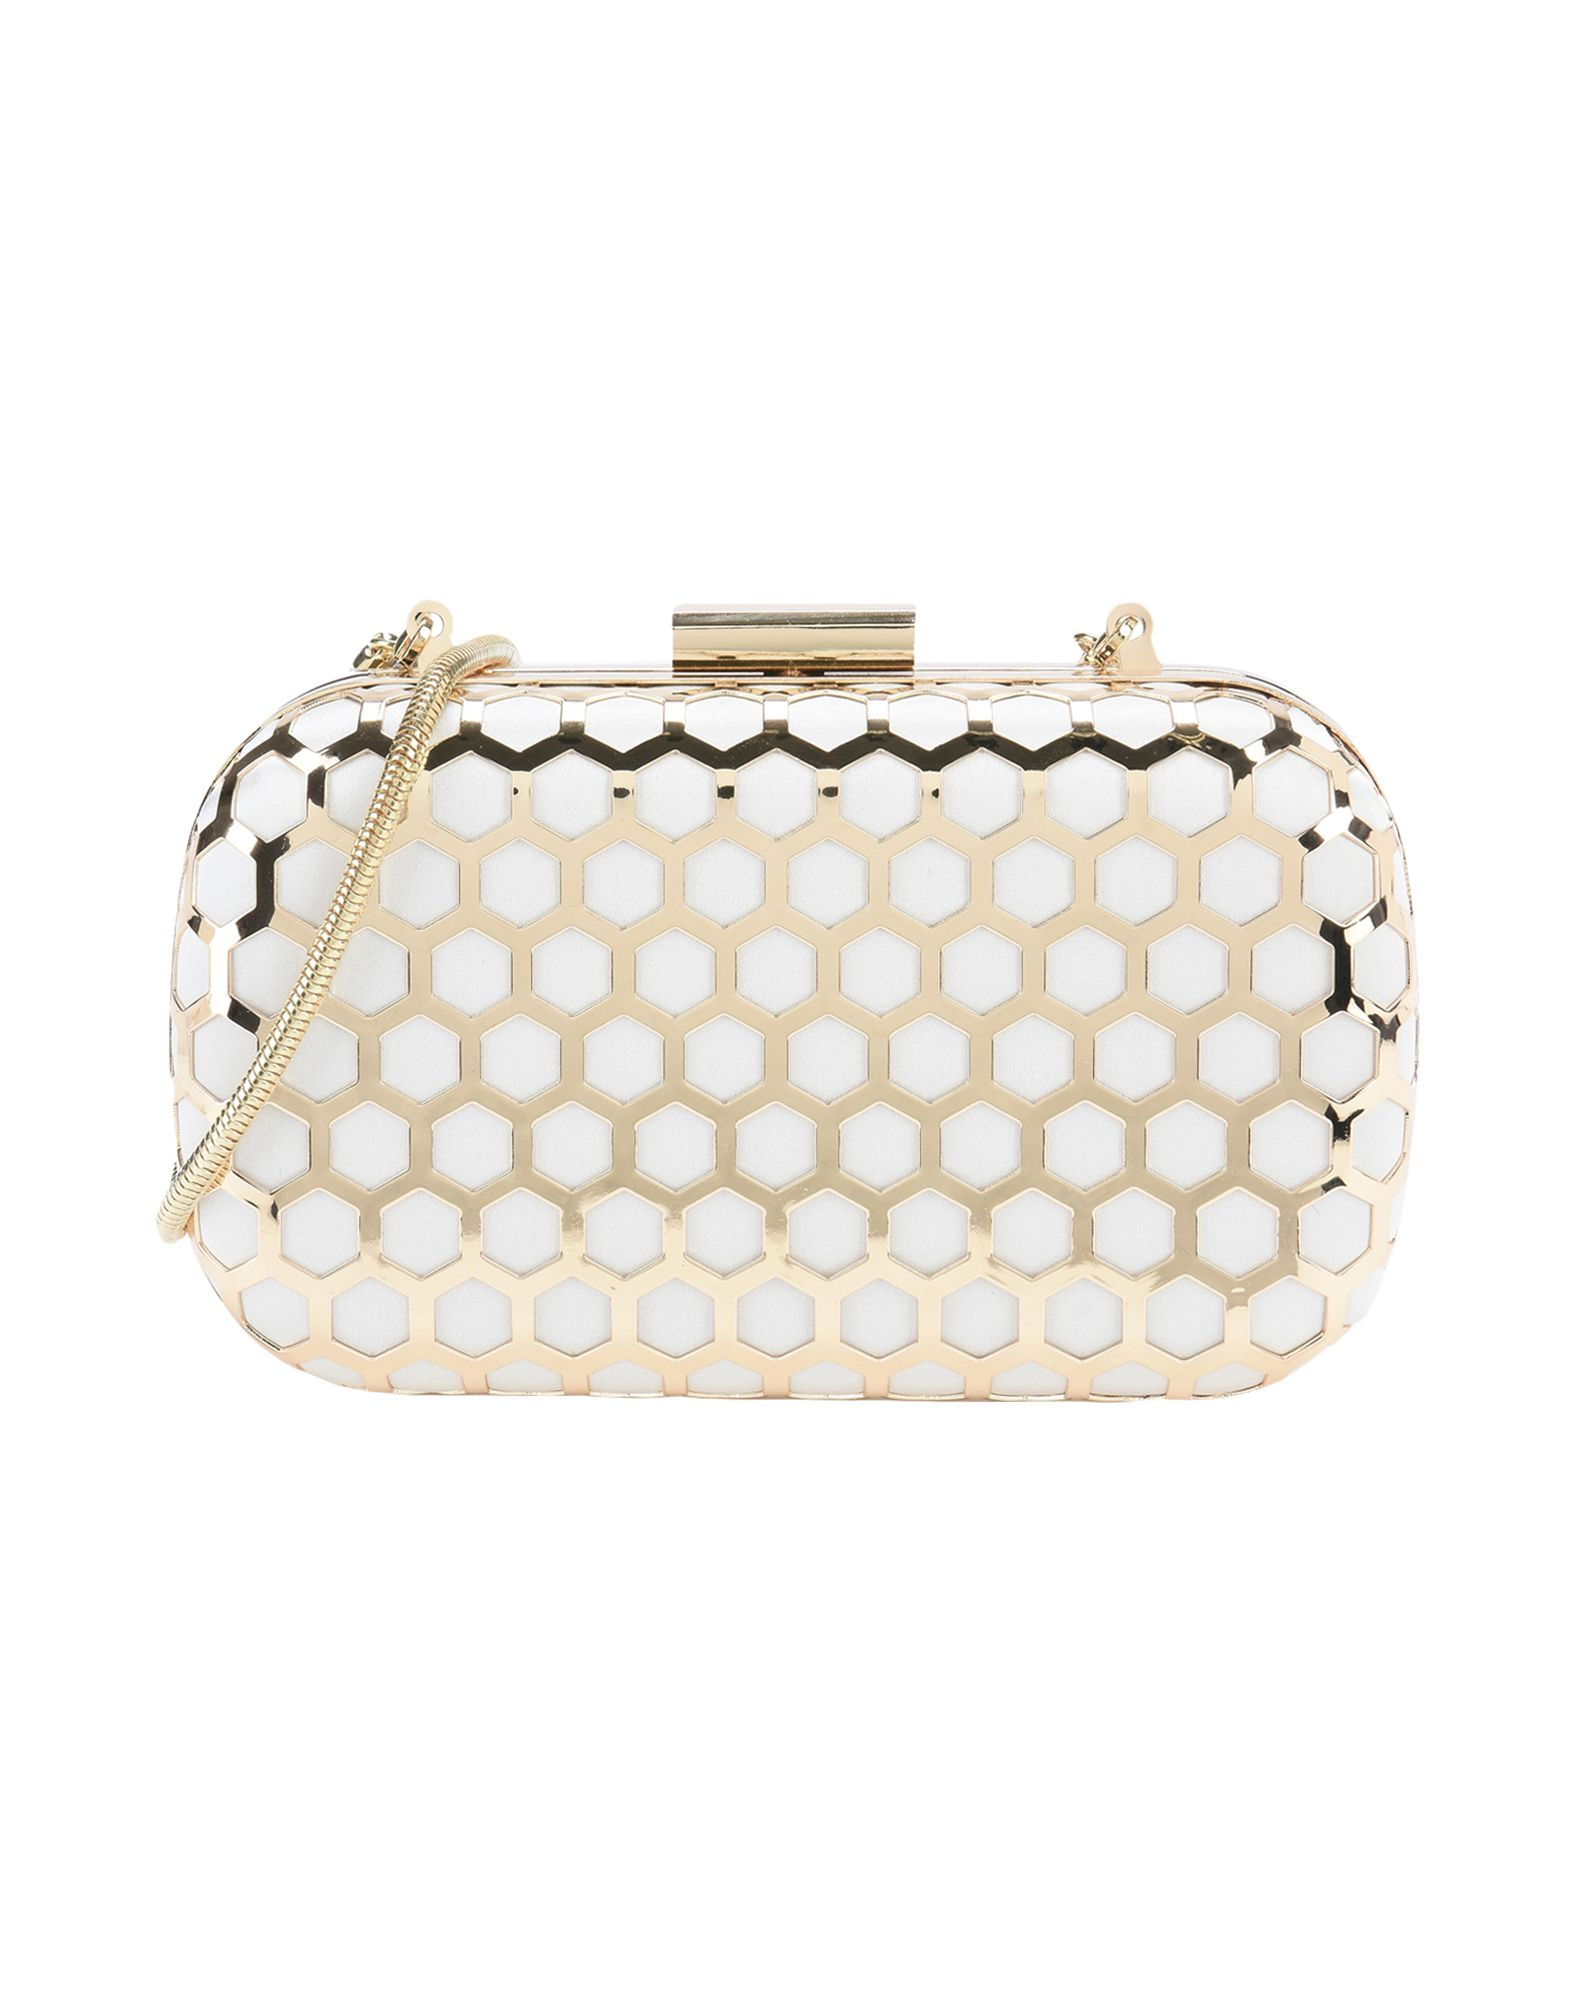 INGE CHRISTOPHER Handbag in Ivory